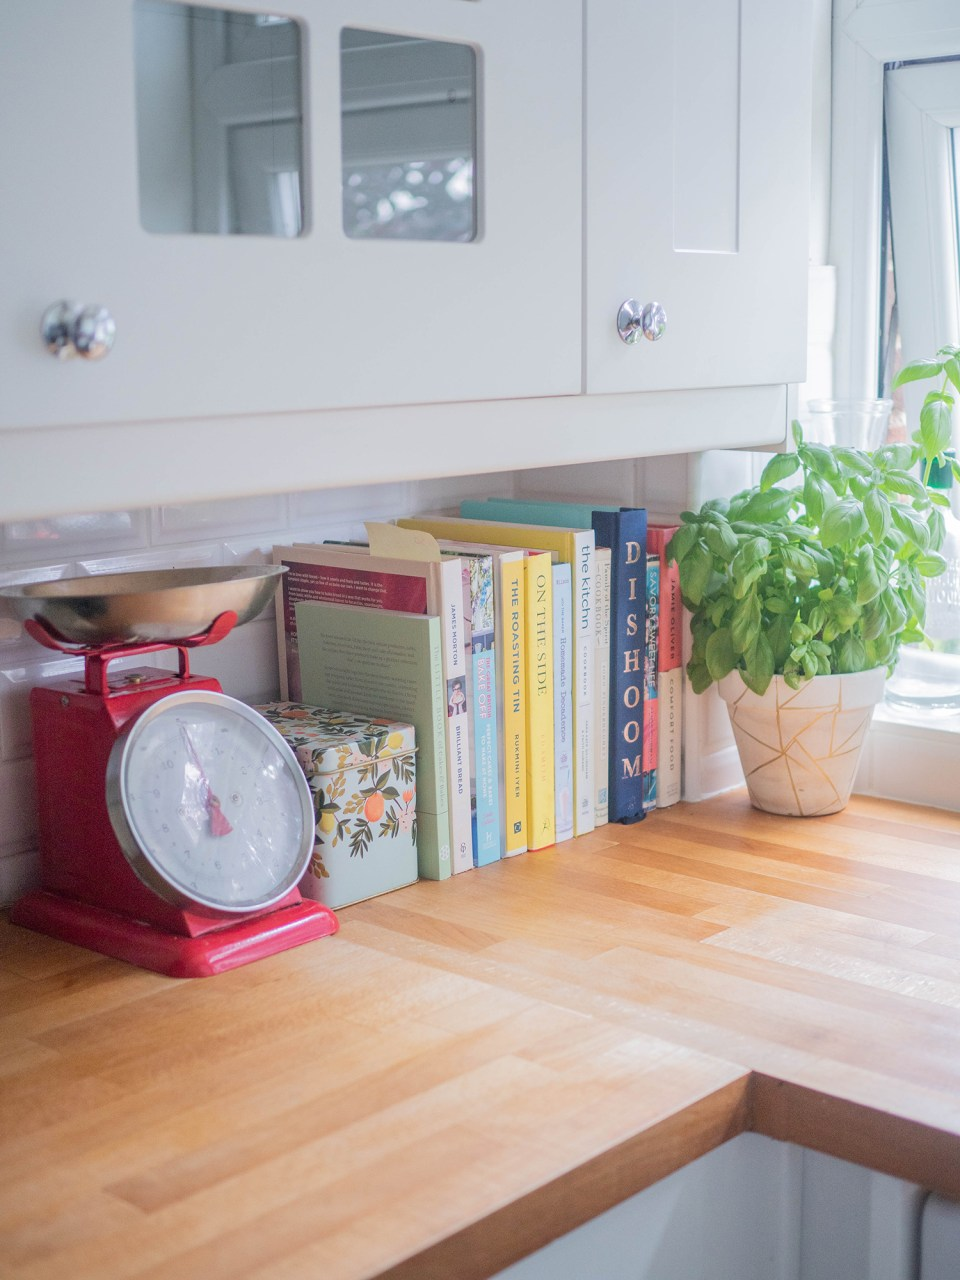 kitchen with weighing scales and cook books